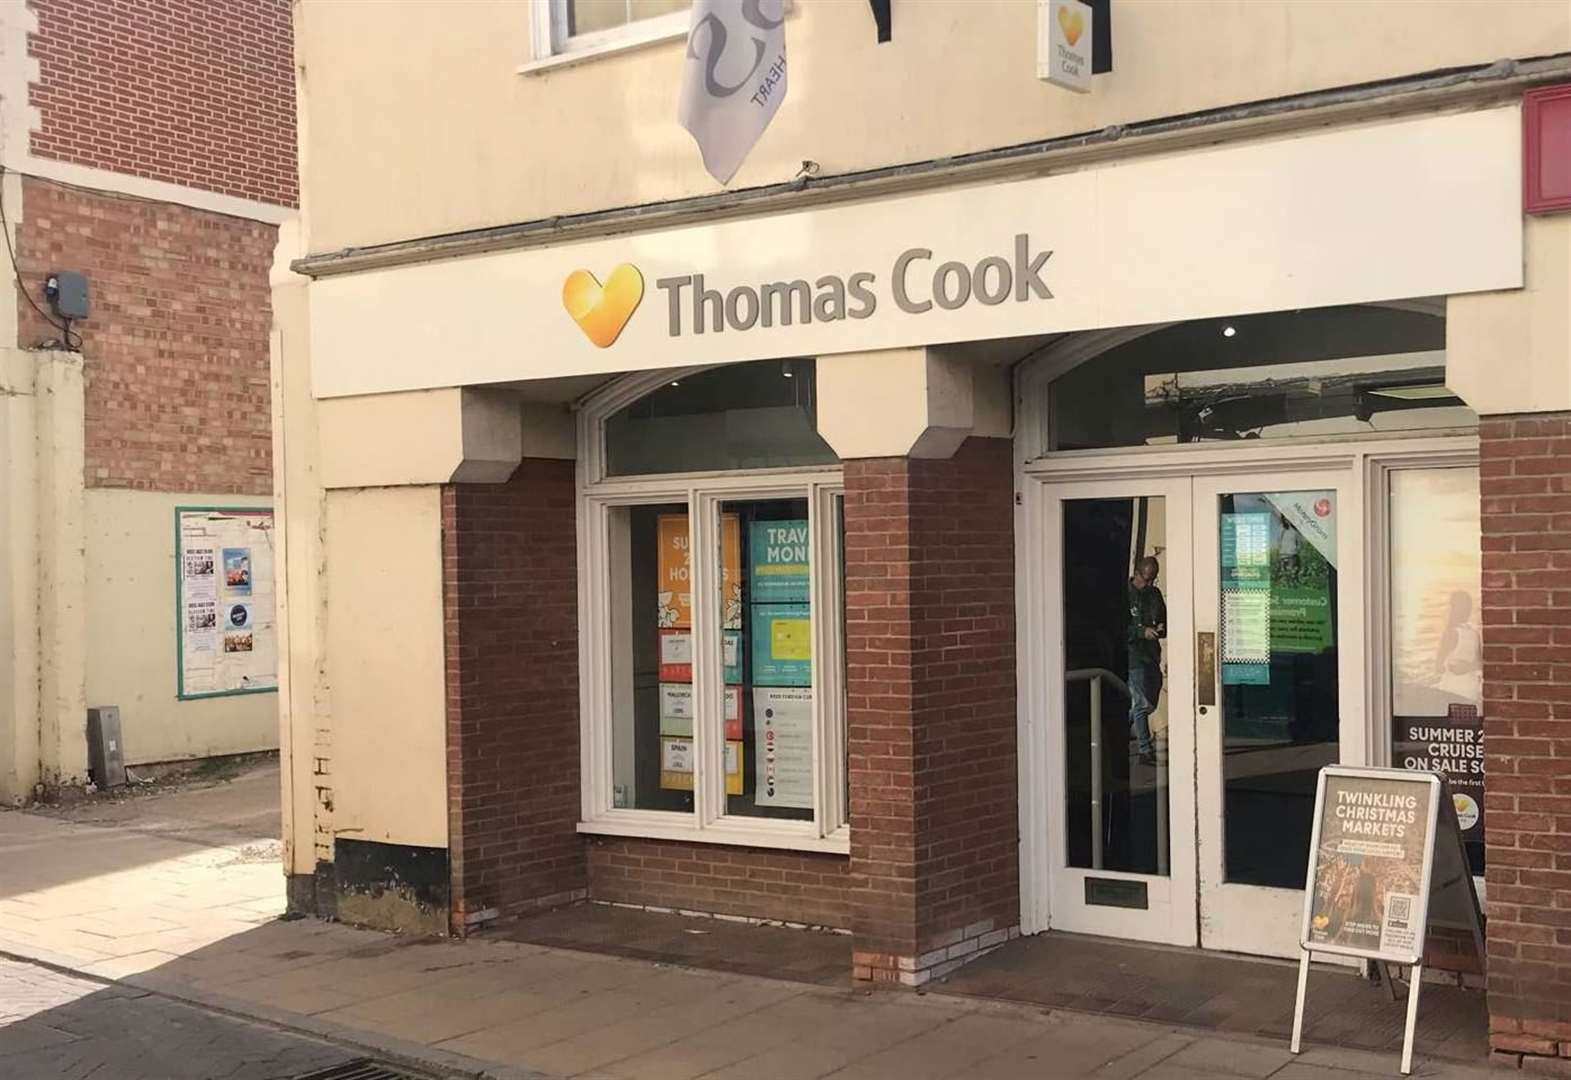 Thomas Cook bids to reassure customers amid fears of collapse